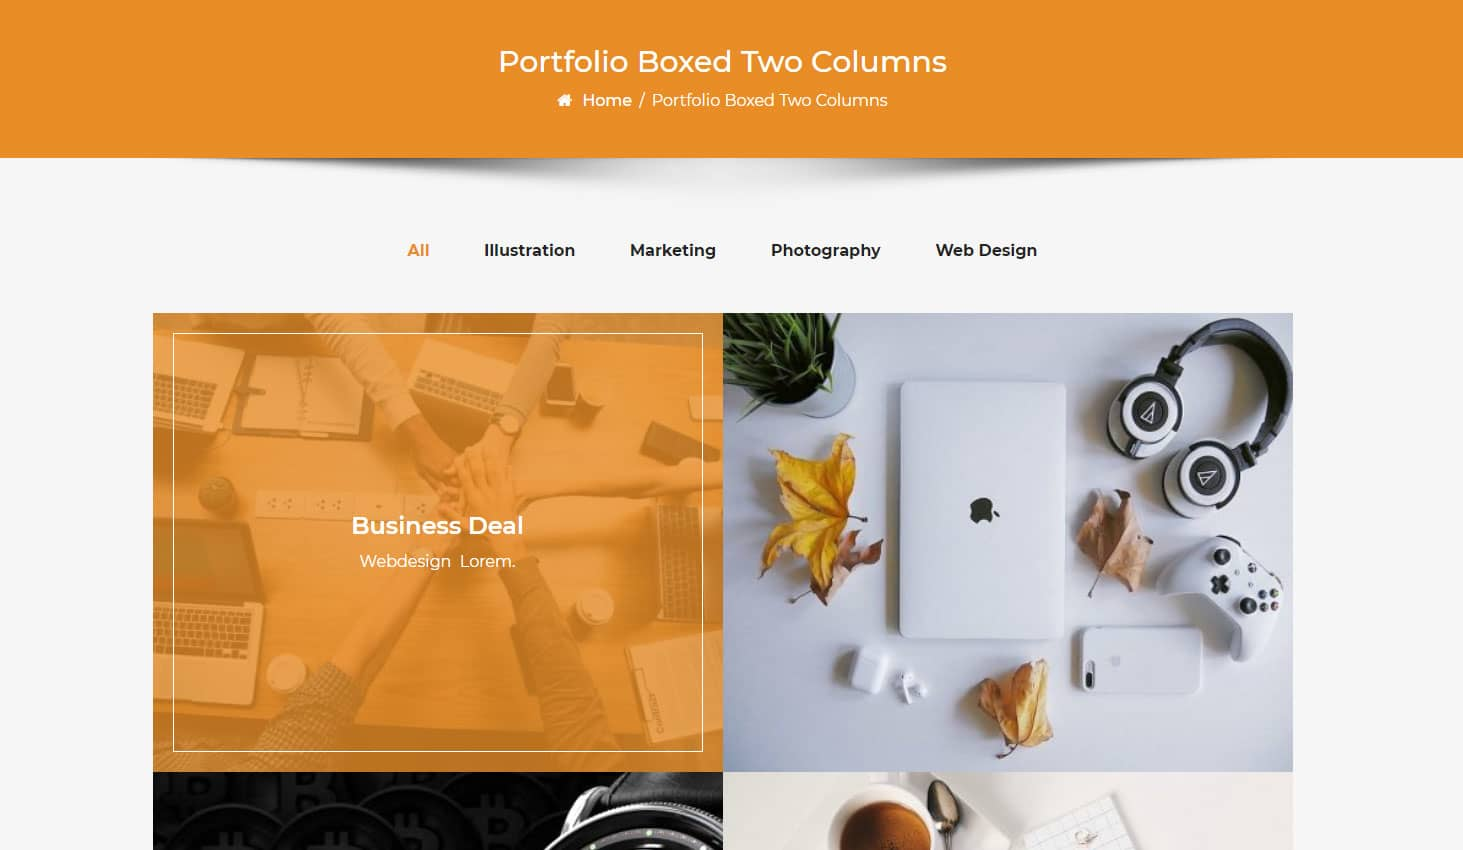 Crypto Premium WordPress Theme For Cryptocurrency Business and Blog Websites - A WP Life - Portfolio Boxed Two Column Layout Template